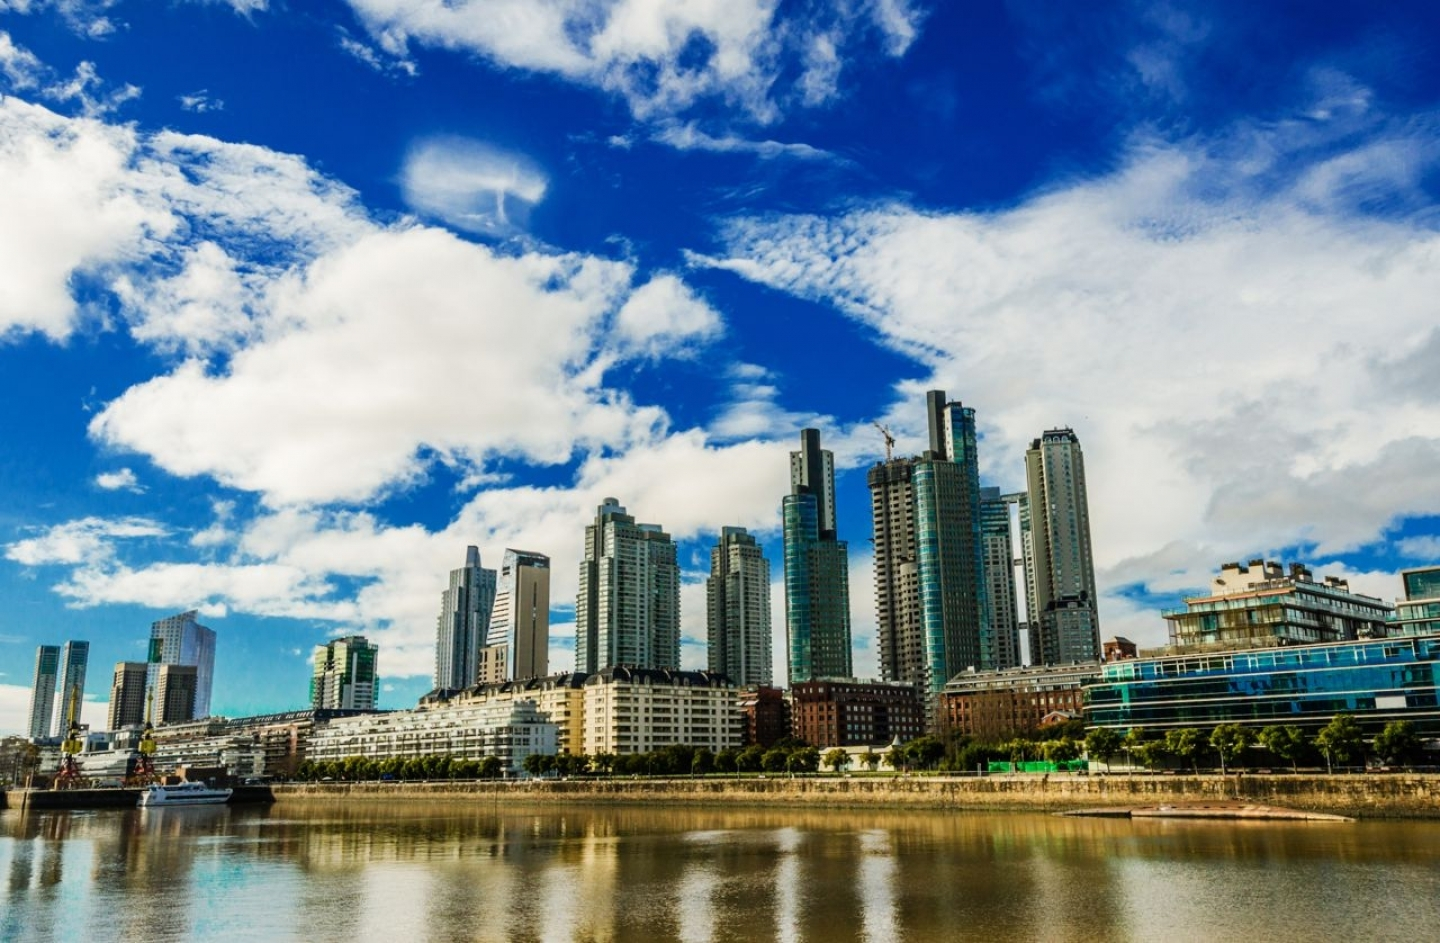 Skyscrapers are seen  in the Puerto Madero business district in Buenos Aires (Shutterstock)